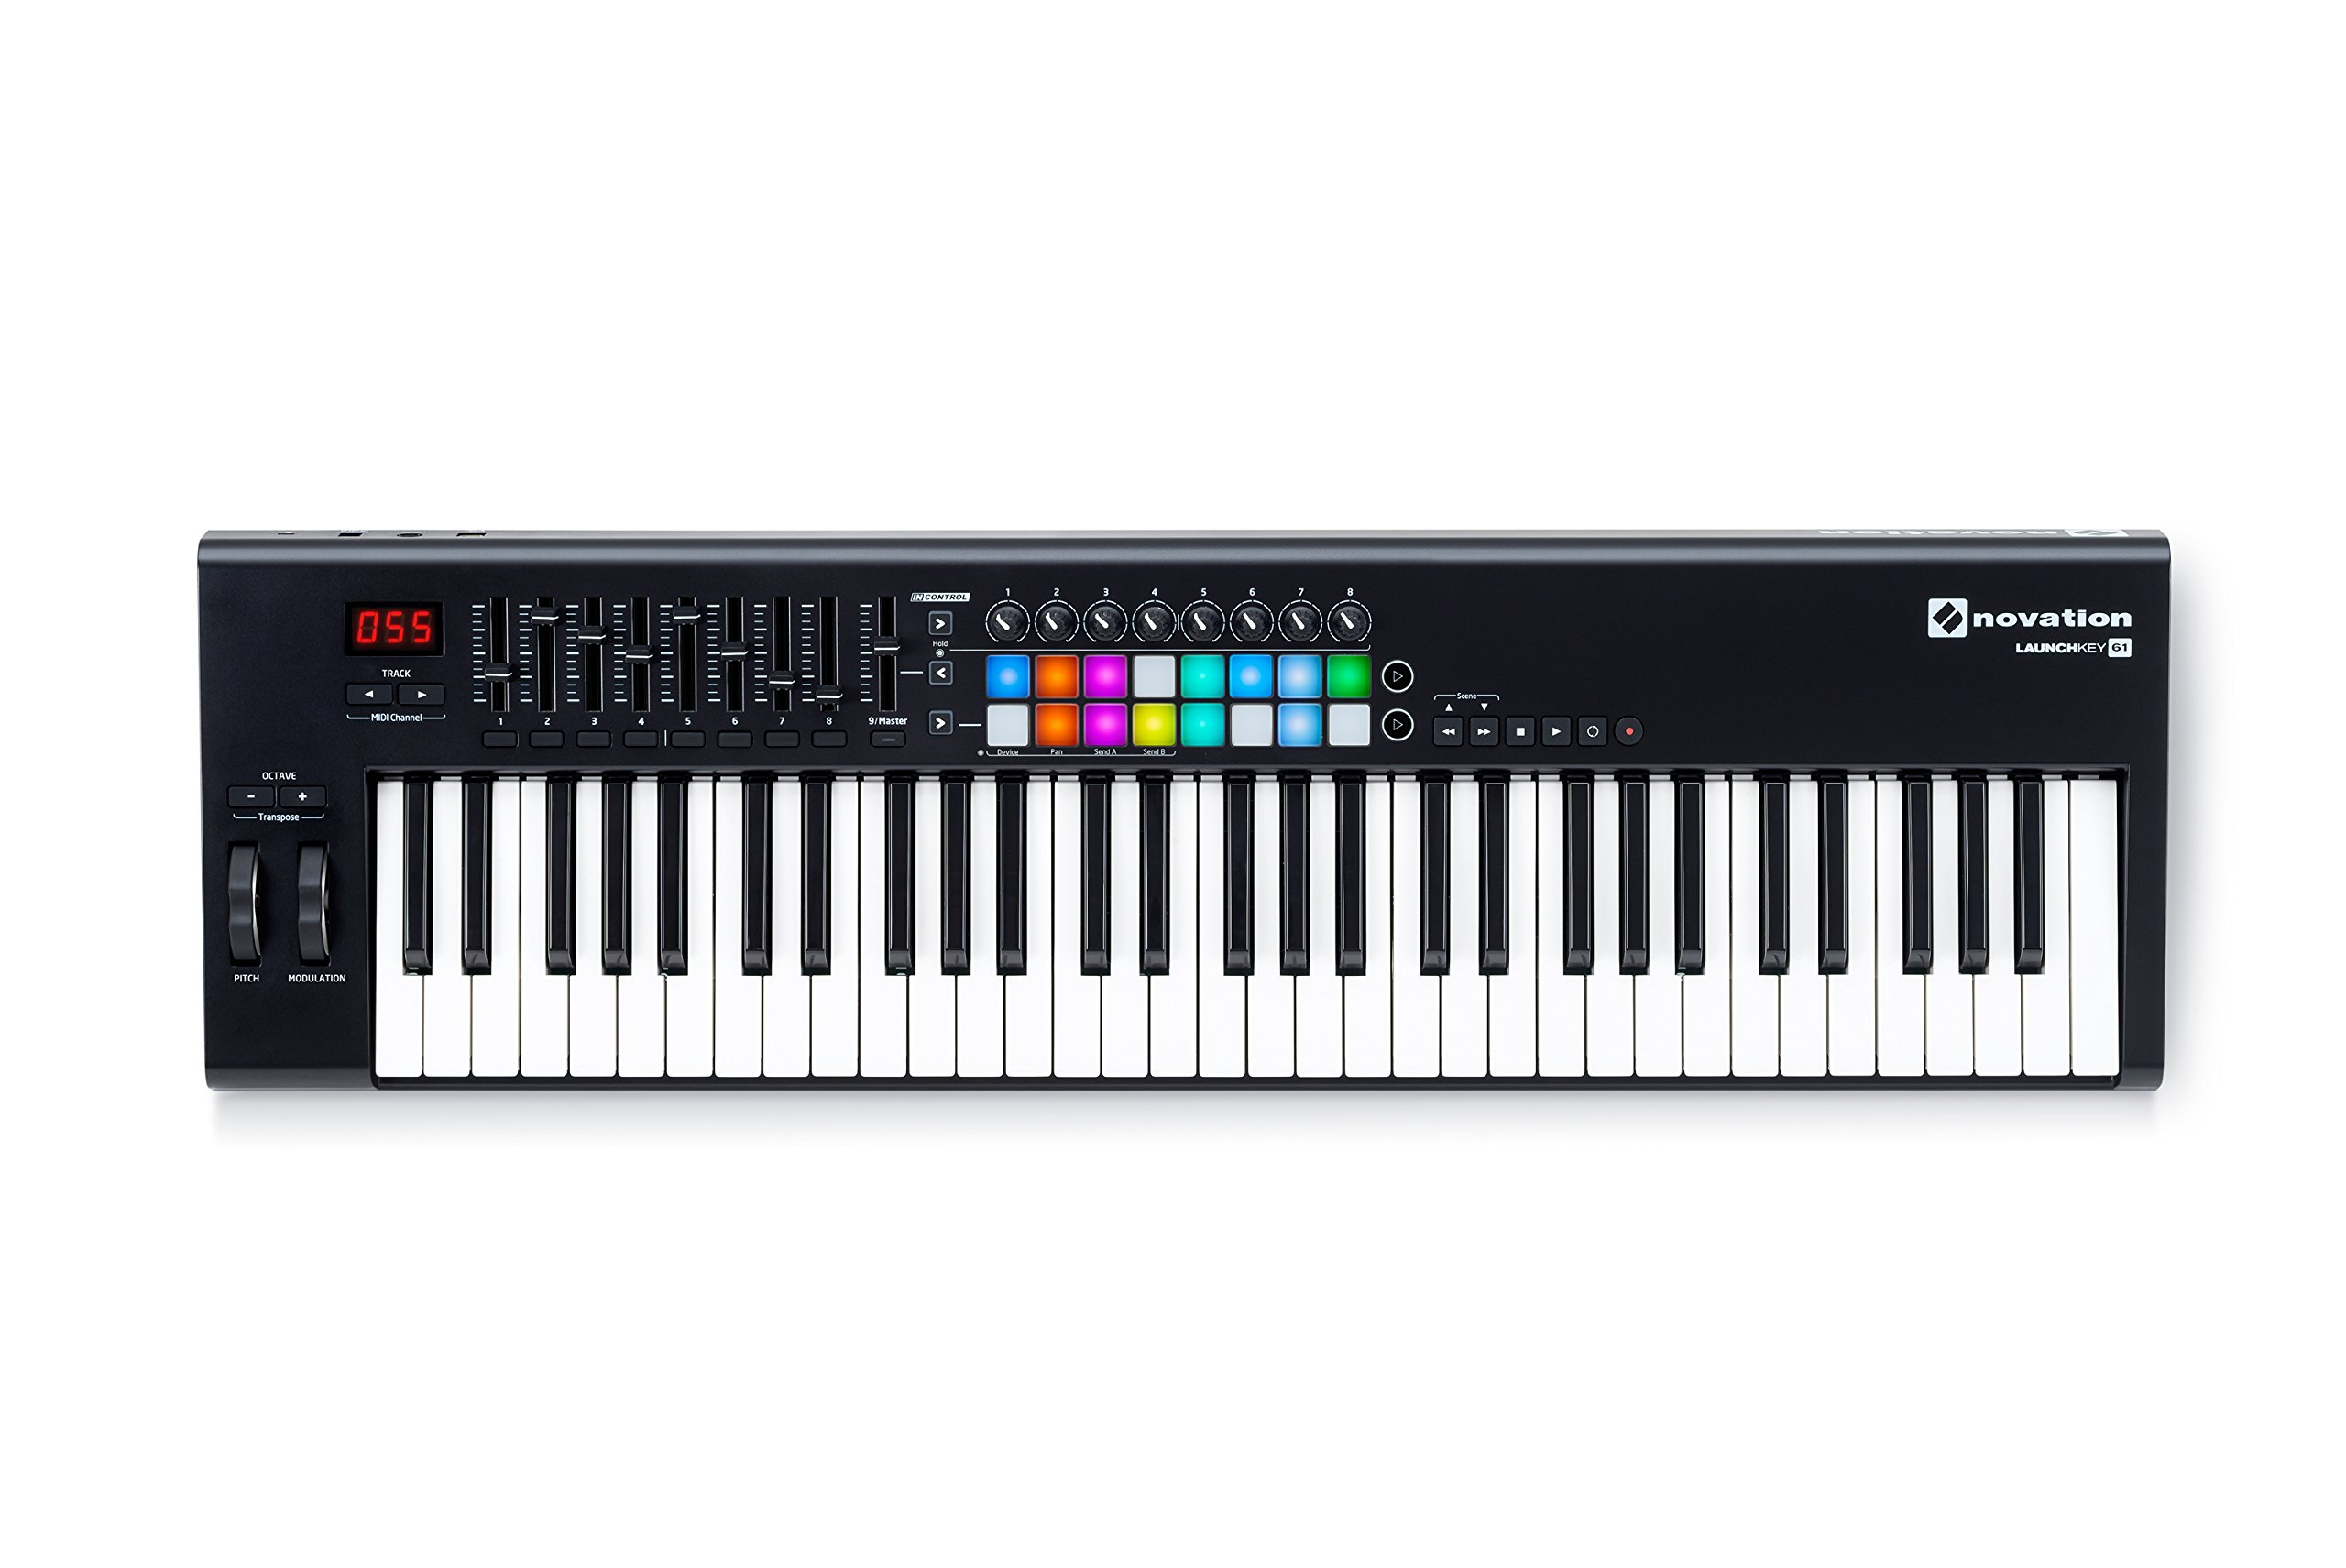 Novation Launchkey 61 USB Keyboard Controller for Ableton Live, 61-Note MK2 Version by Novation (Image #2)